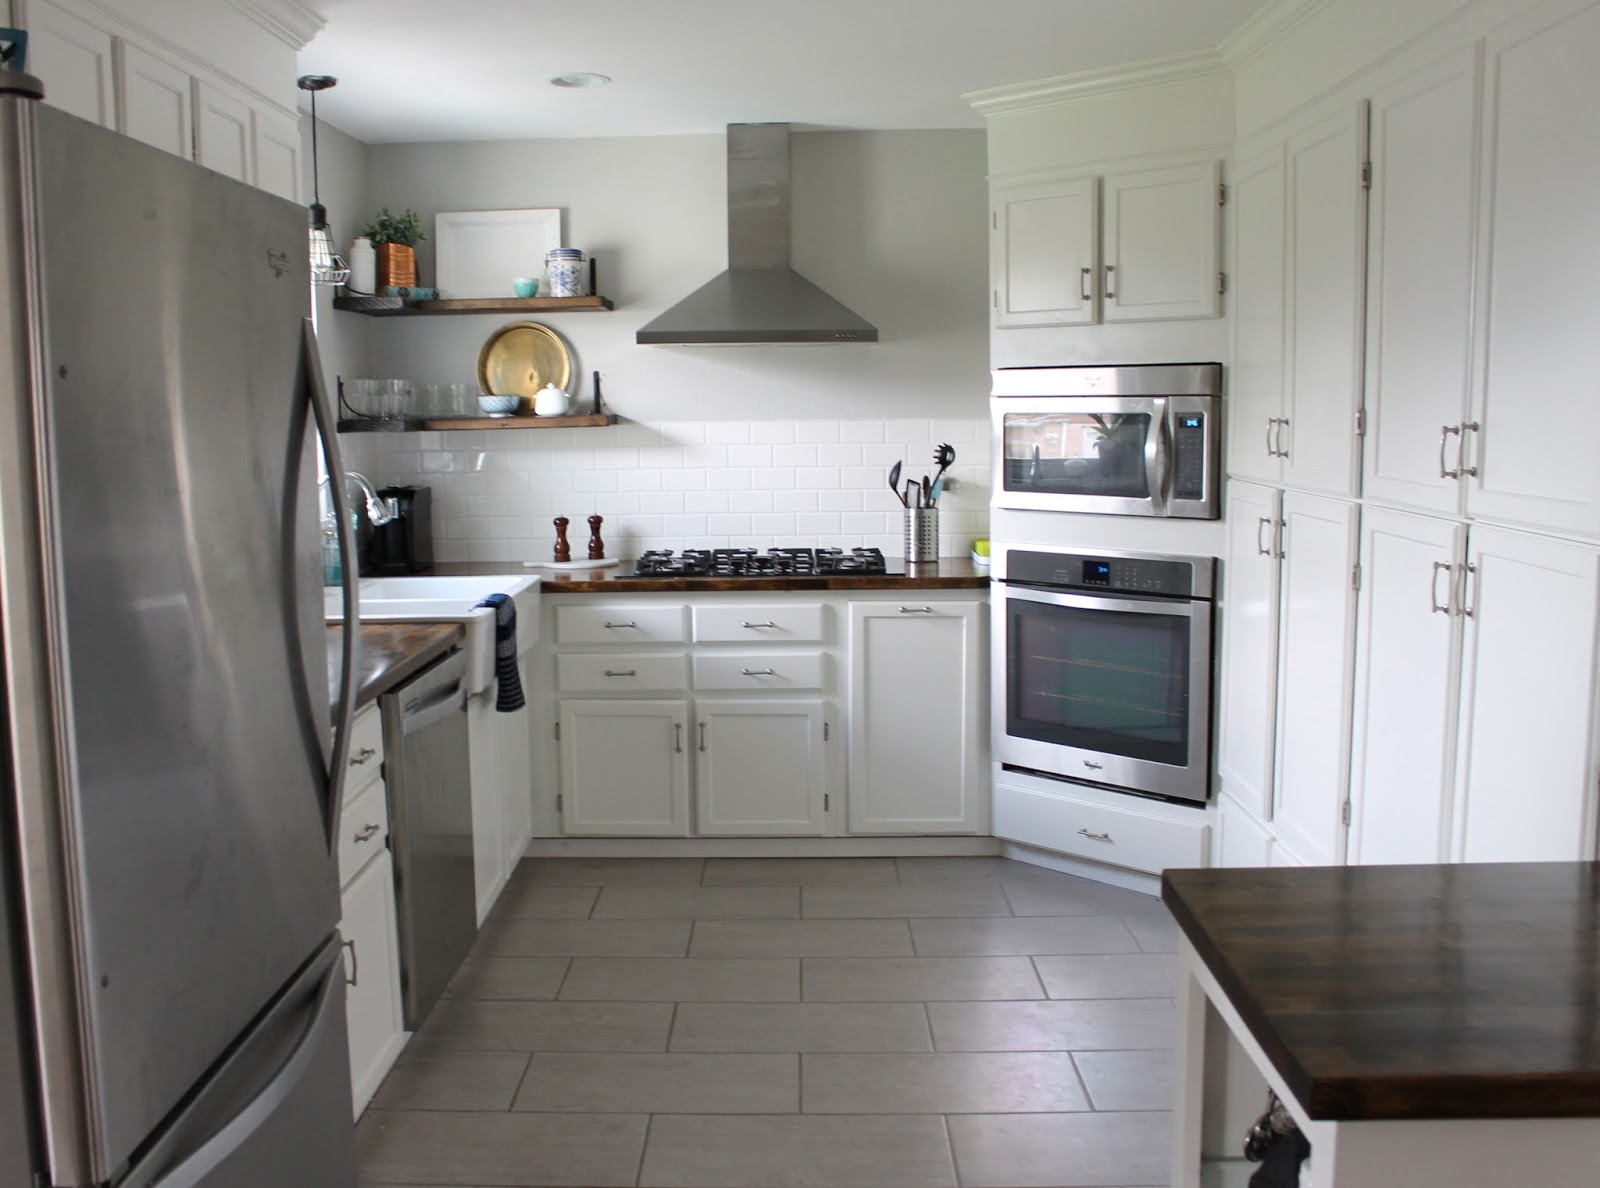 Diy Extend Kitchen Cabinets Wonderfully Made Extending Kitchen Cabinets To The Ceiling